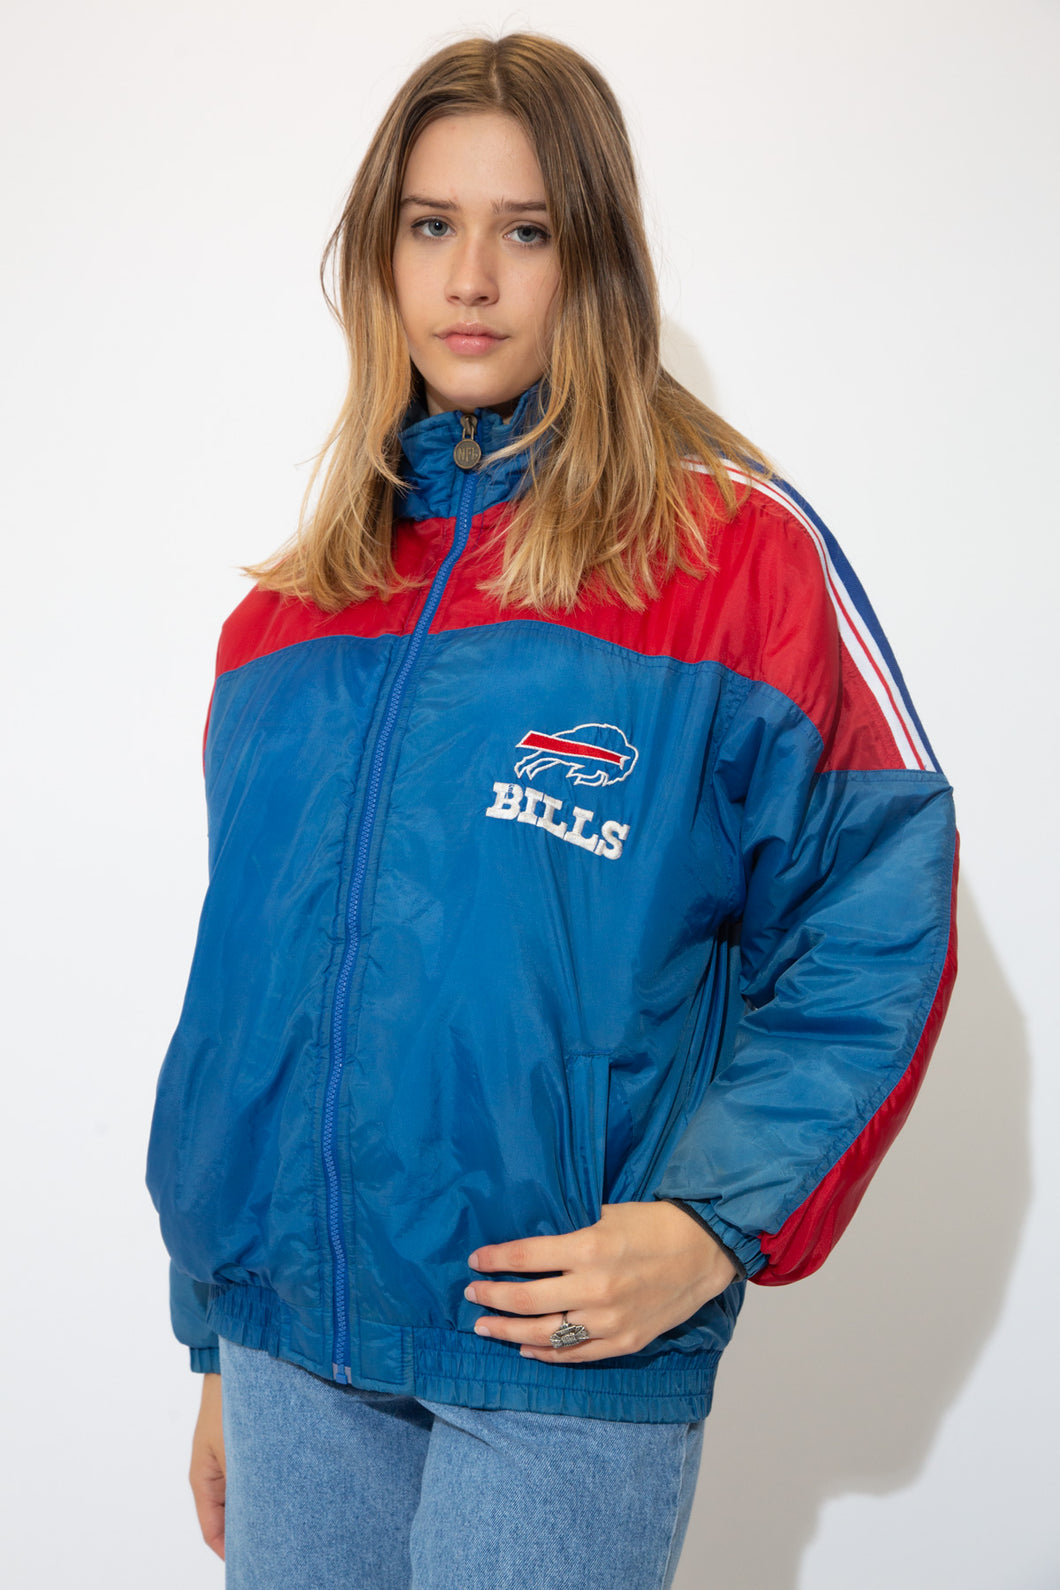 Buffalo Bills NFL Jacket